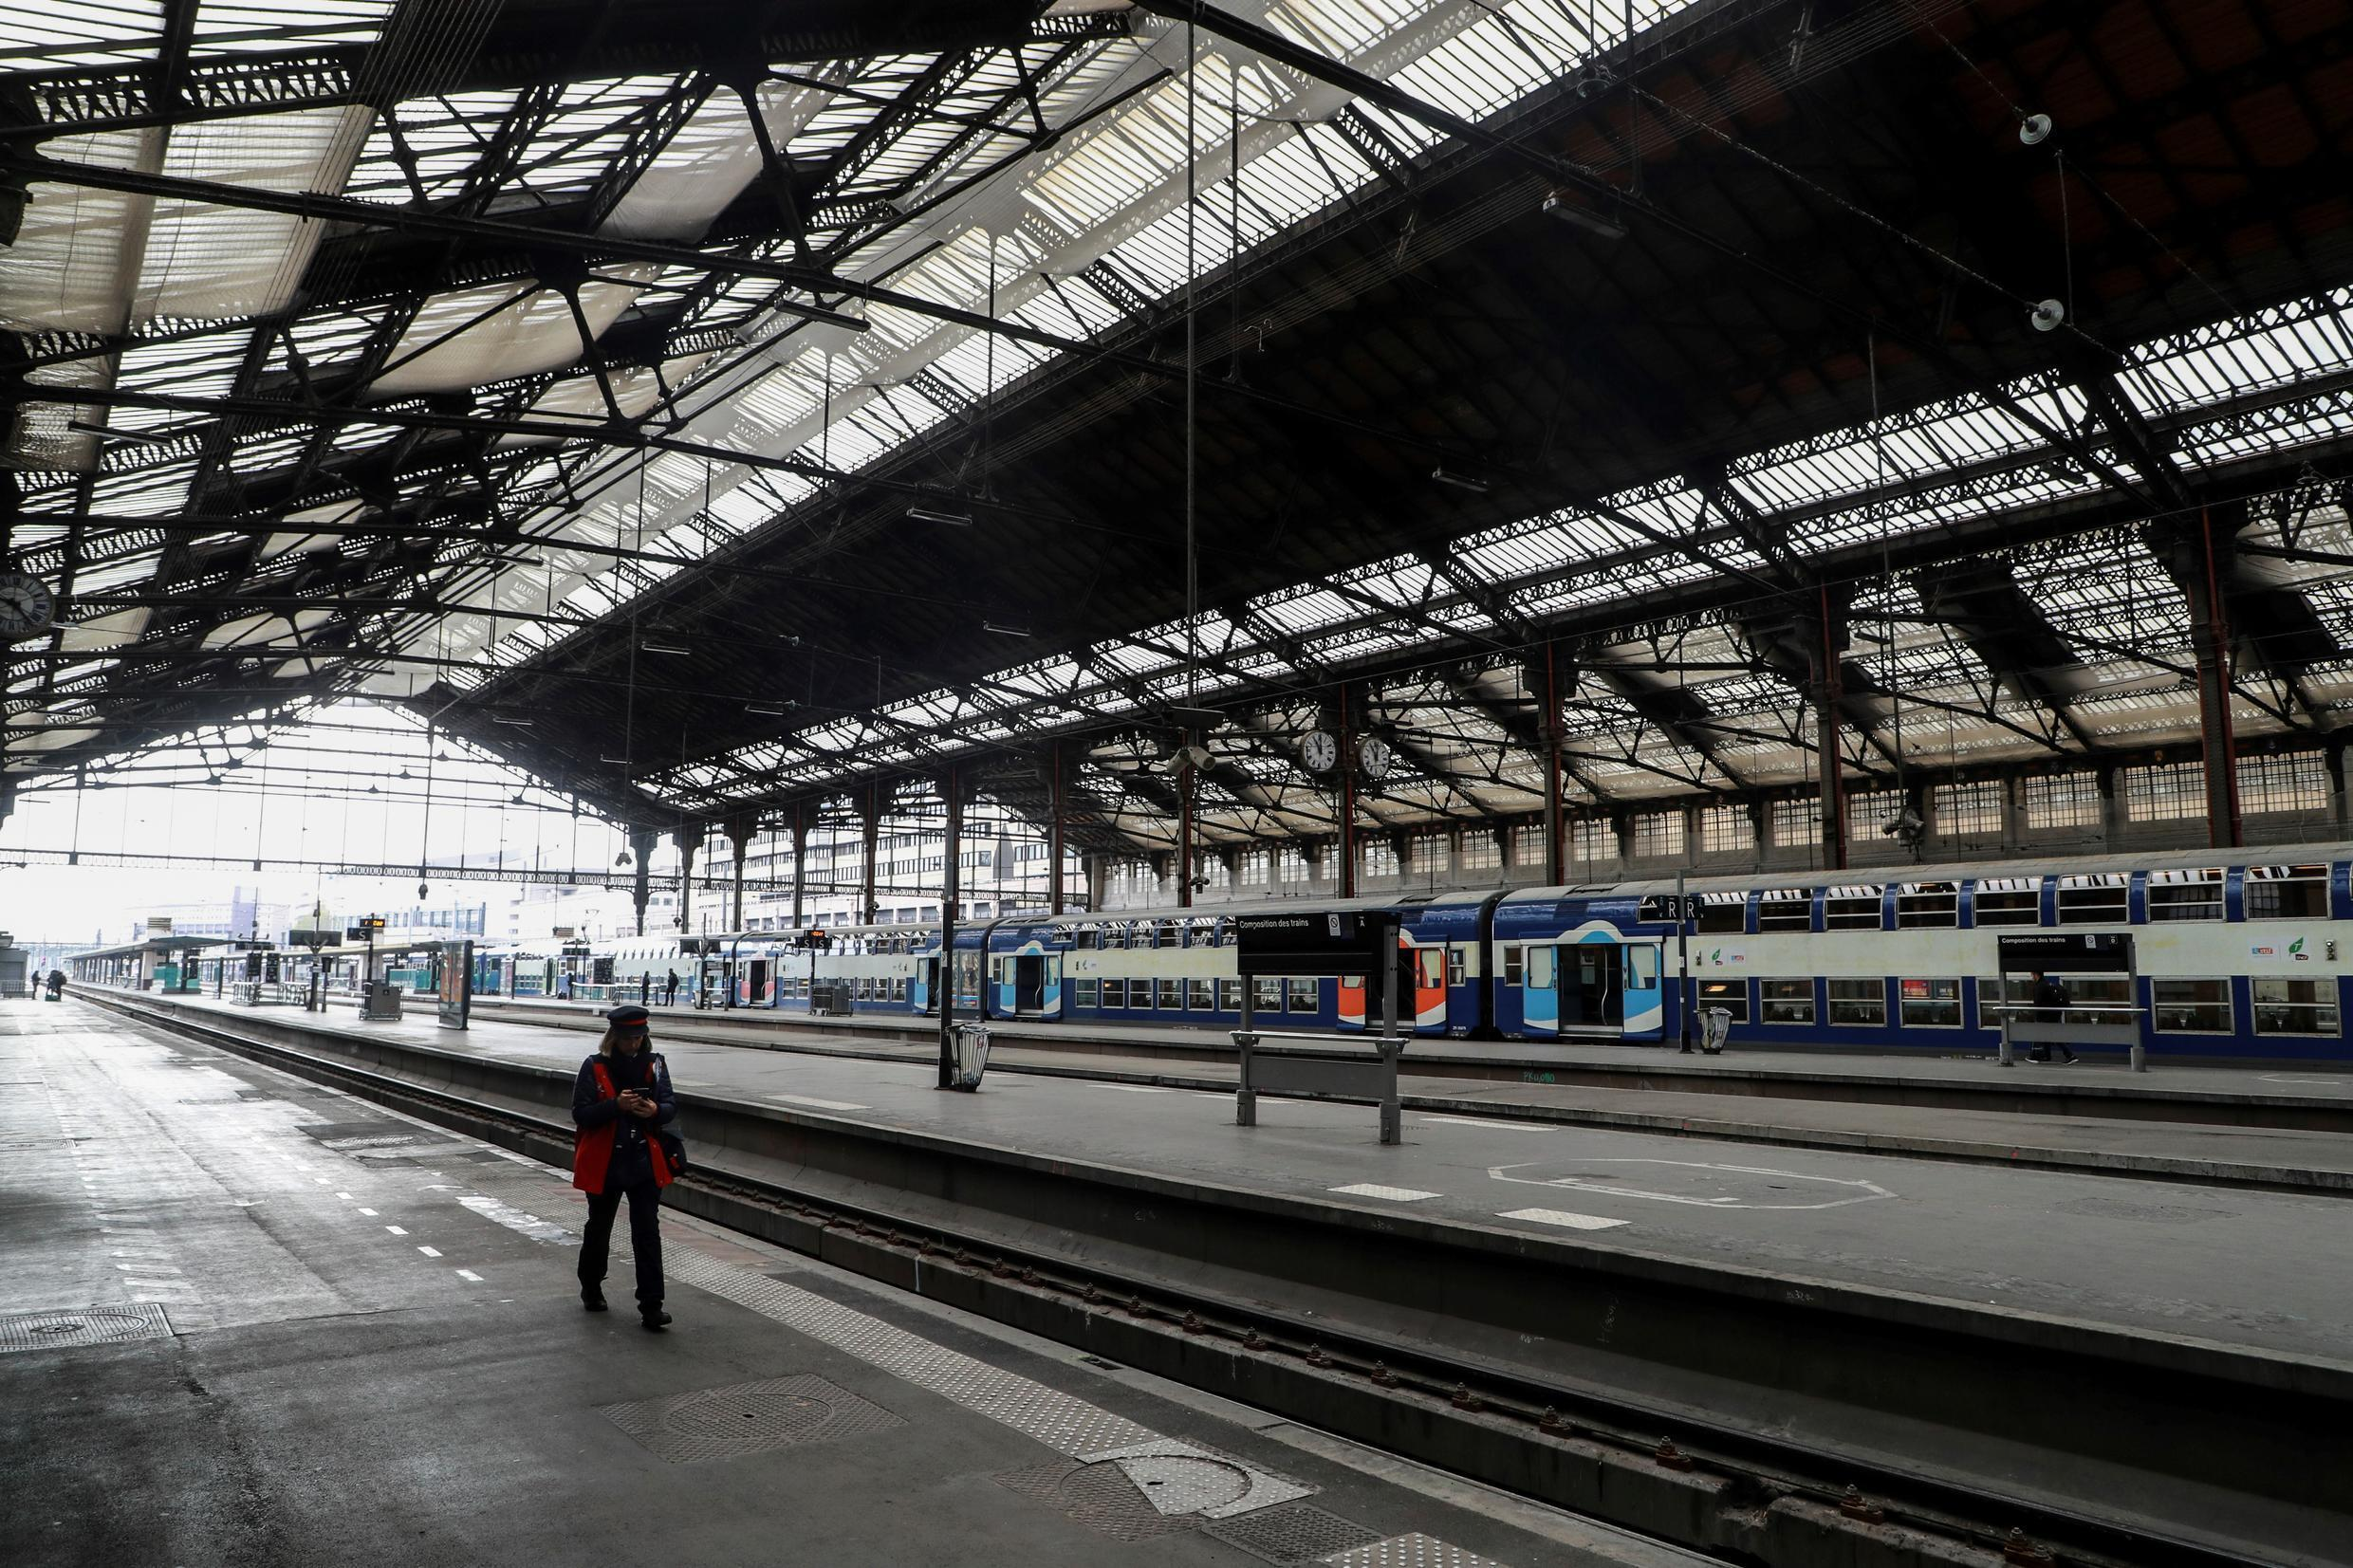 A SNCF employee walks on an empty platform of the Gare de Lyon train station in Paris on April 3, 2020 on the eighteenth day of a lockdown in France aimed at curbing the spread of the COVID-19 infection caused by the novel coronavirus in France.